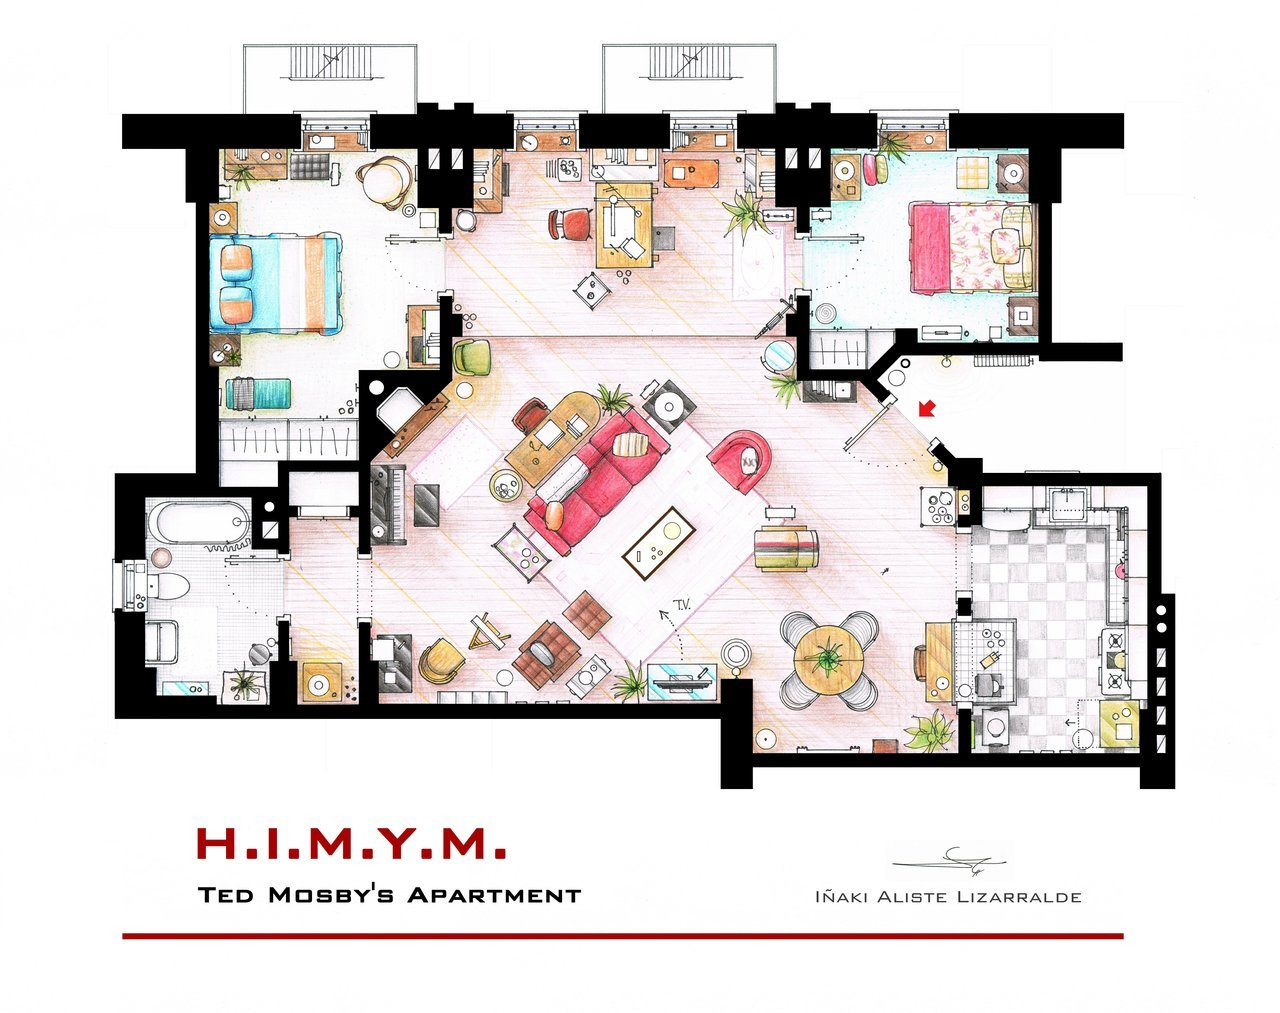 How I Met Your Mother Apartment Floor Plan